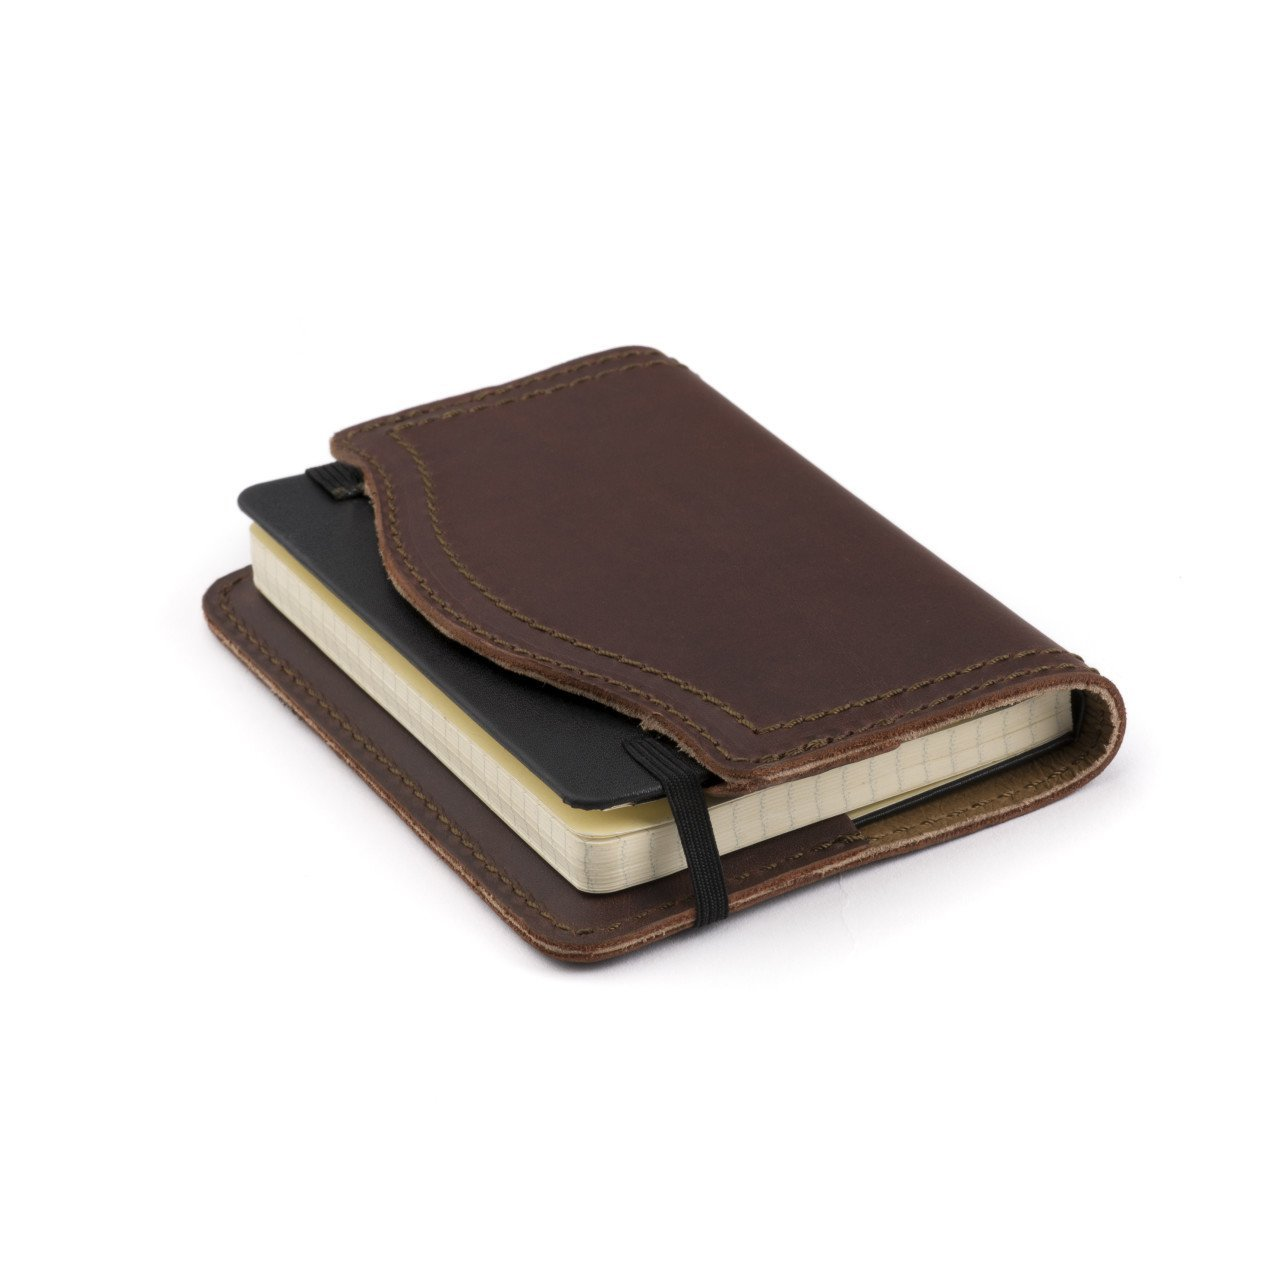 Saddleback Leather Co. Moleskine Notebook Cahier Leather Journal Cover for Sketchbooks and Notebooks Includes 100 Year Warranty by Saddleback Leather Co.